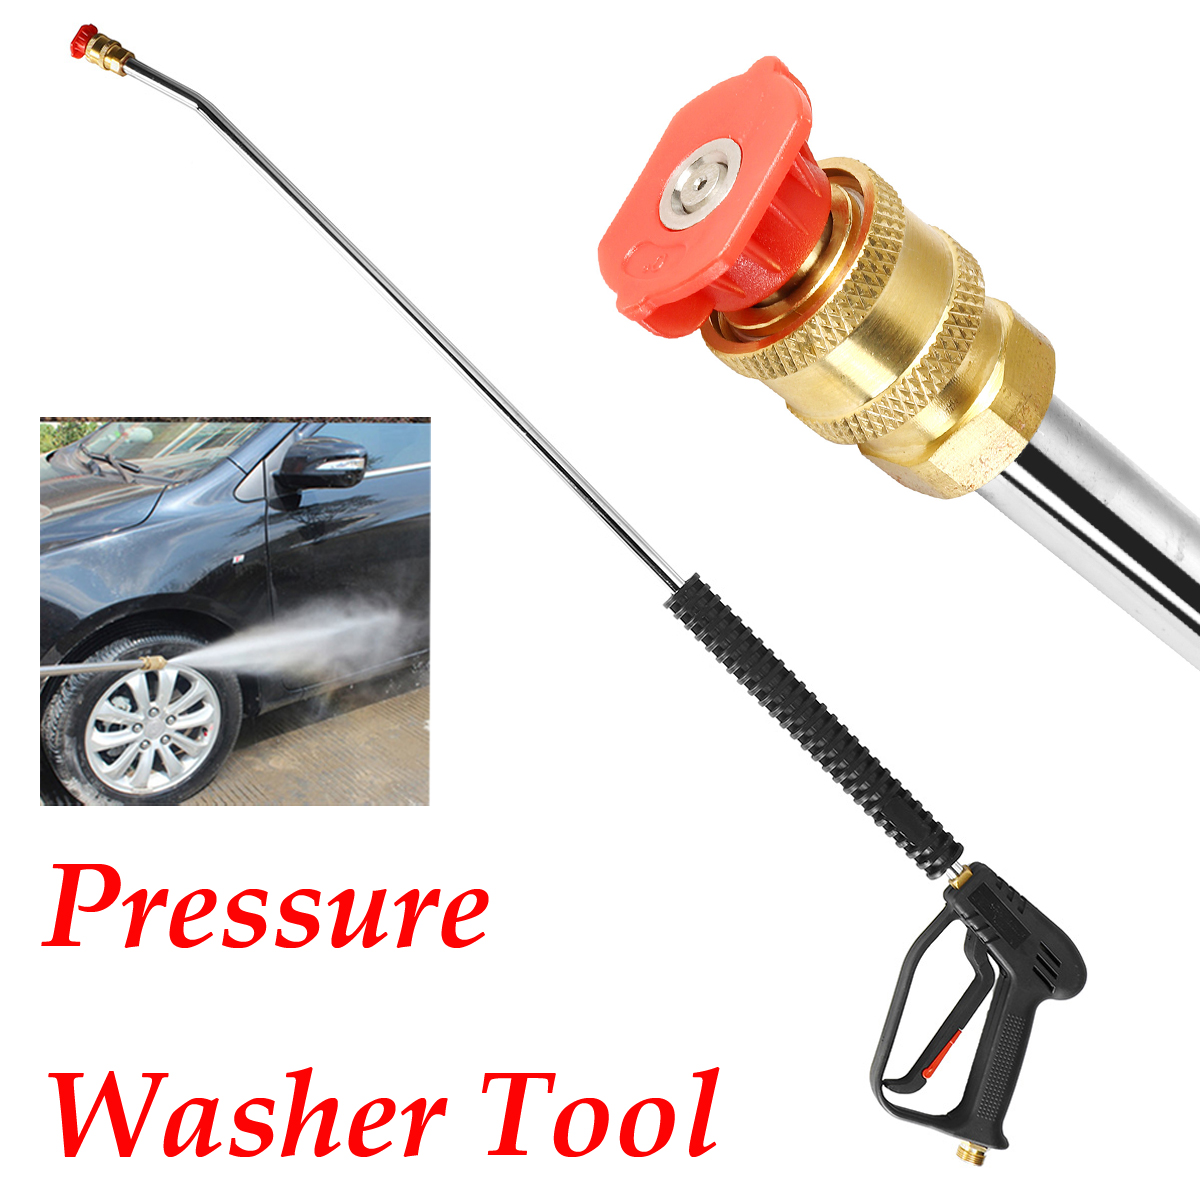 1PC 1065mm Car Pressure Washer Spray-Gun Wand Lance Nozzle Tips M22 Quick Connector Kit for Car Washing Tool pressure washer gun 4000 psi spray gun with 18 extension wand 4 quick connect nozzles 1 soap nozzle for car washers